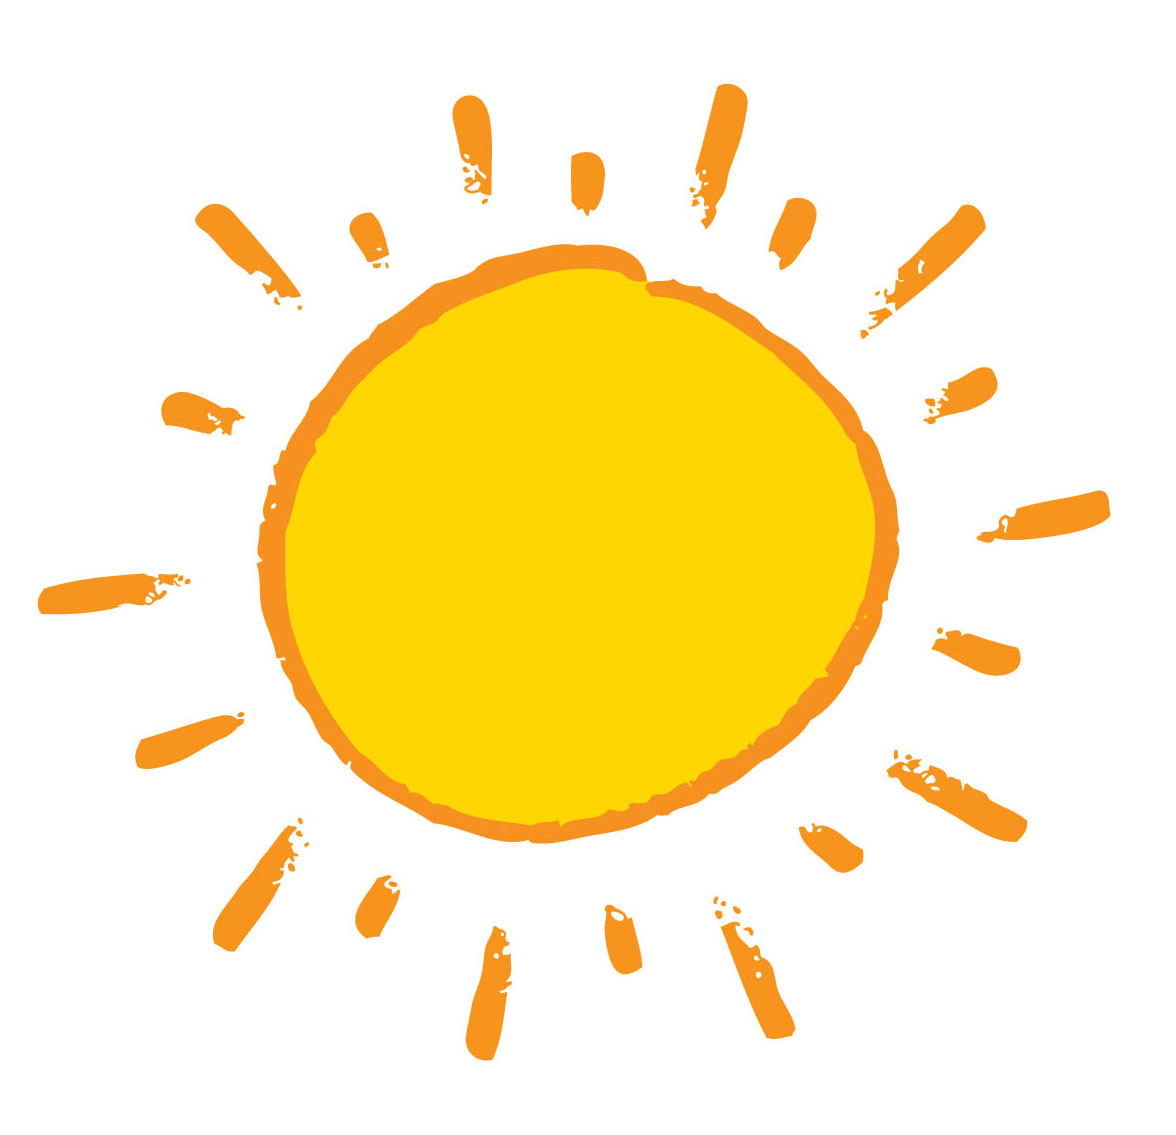 Png Sun Icon image #8574